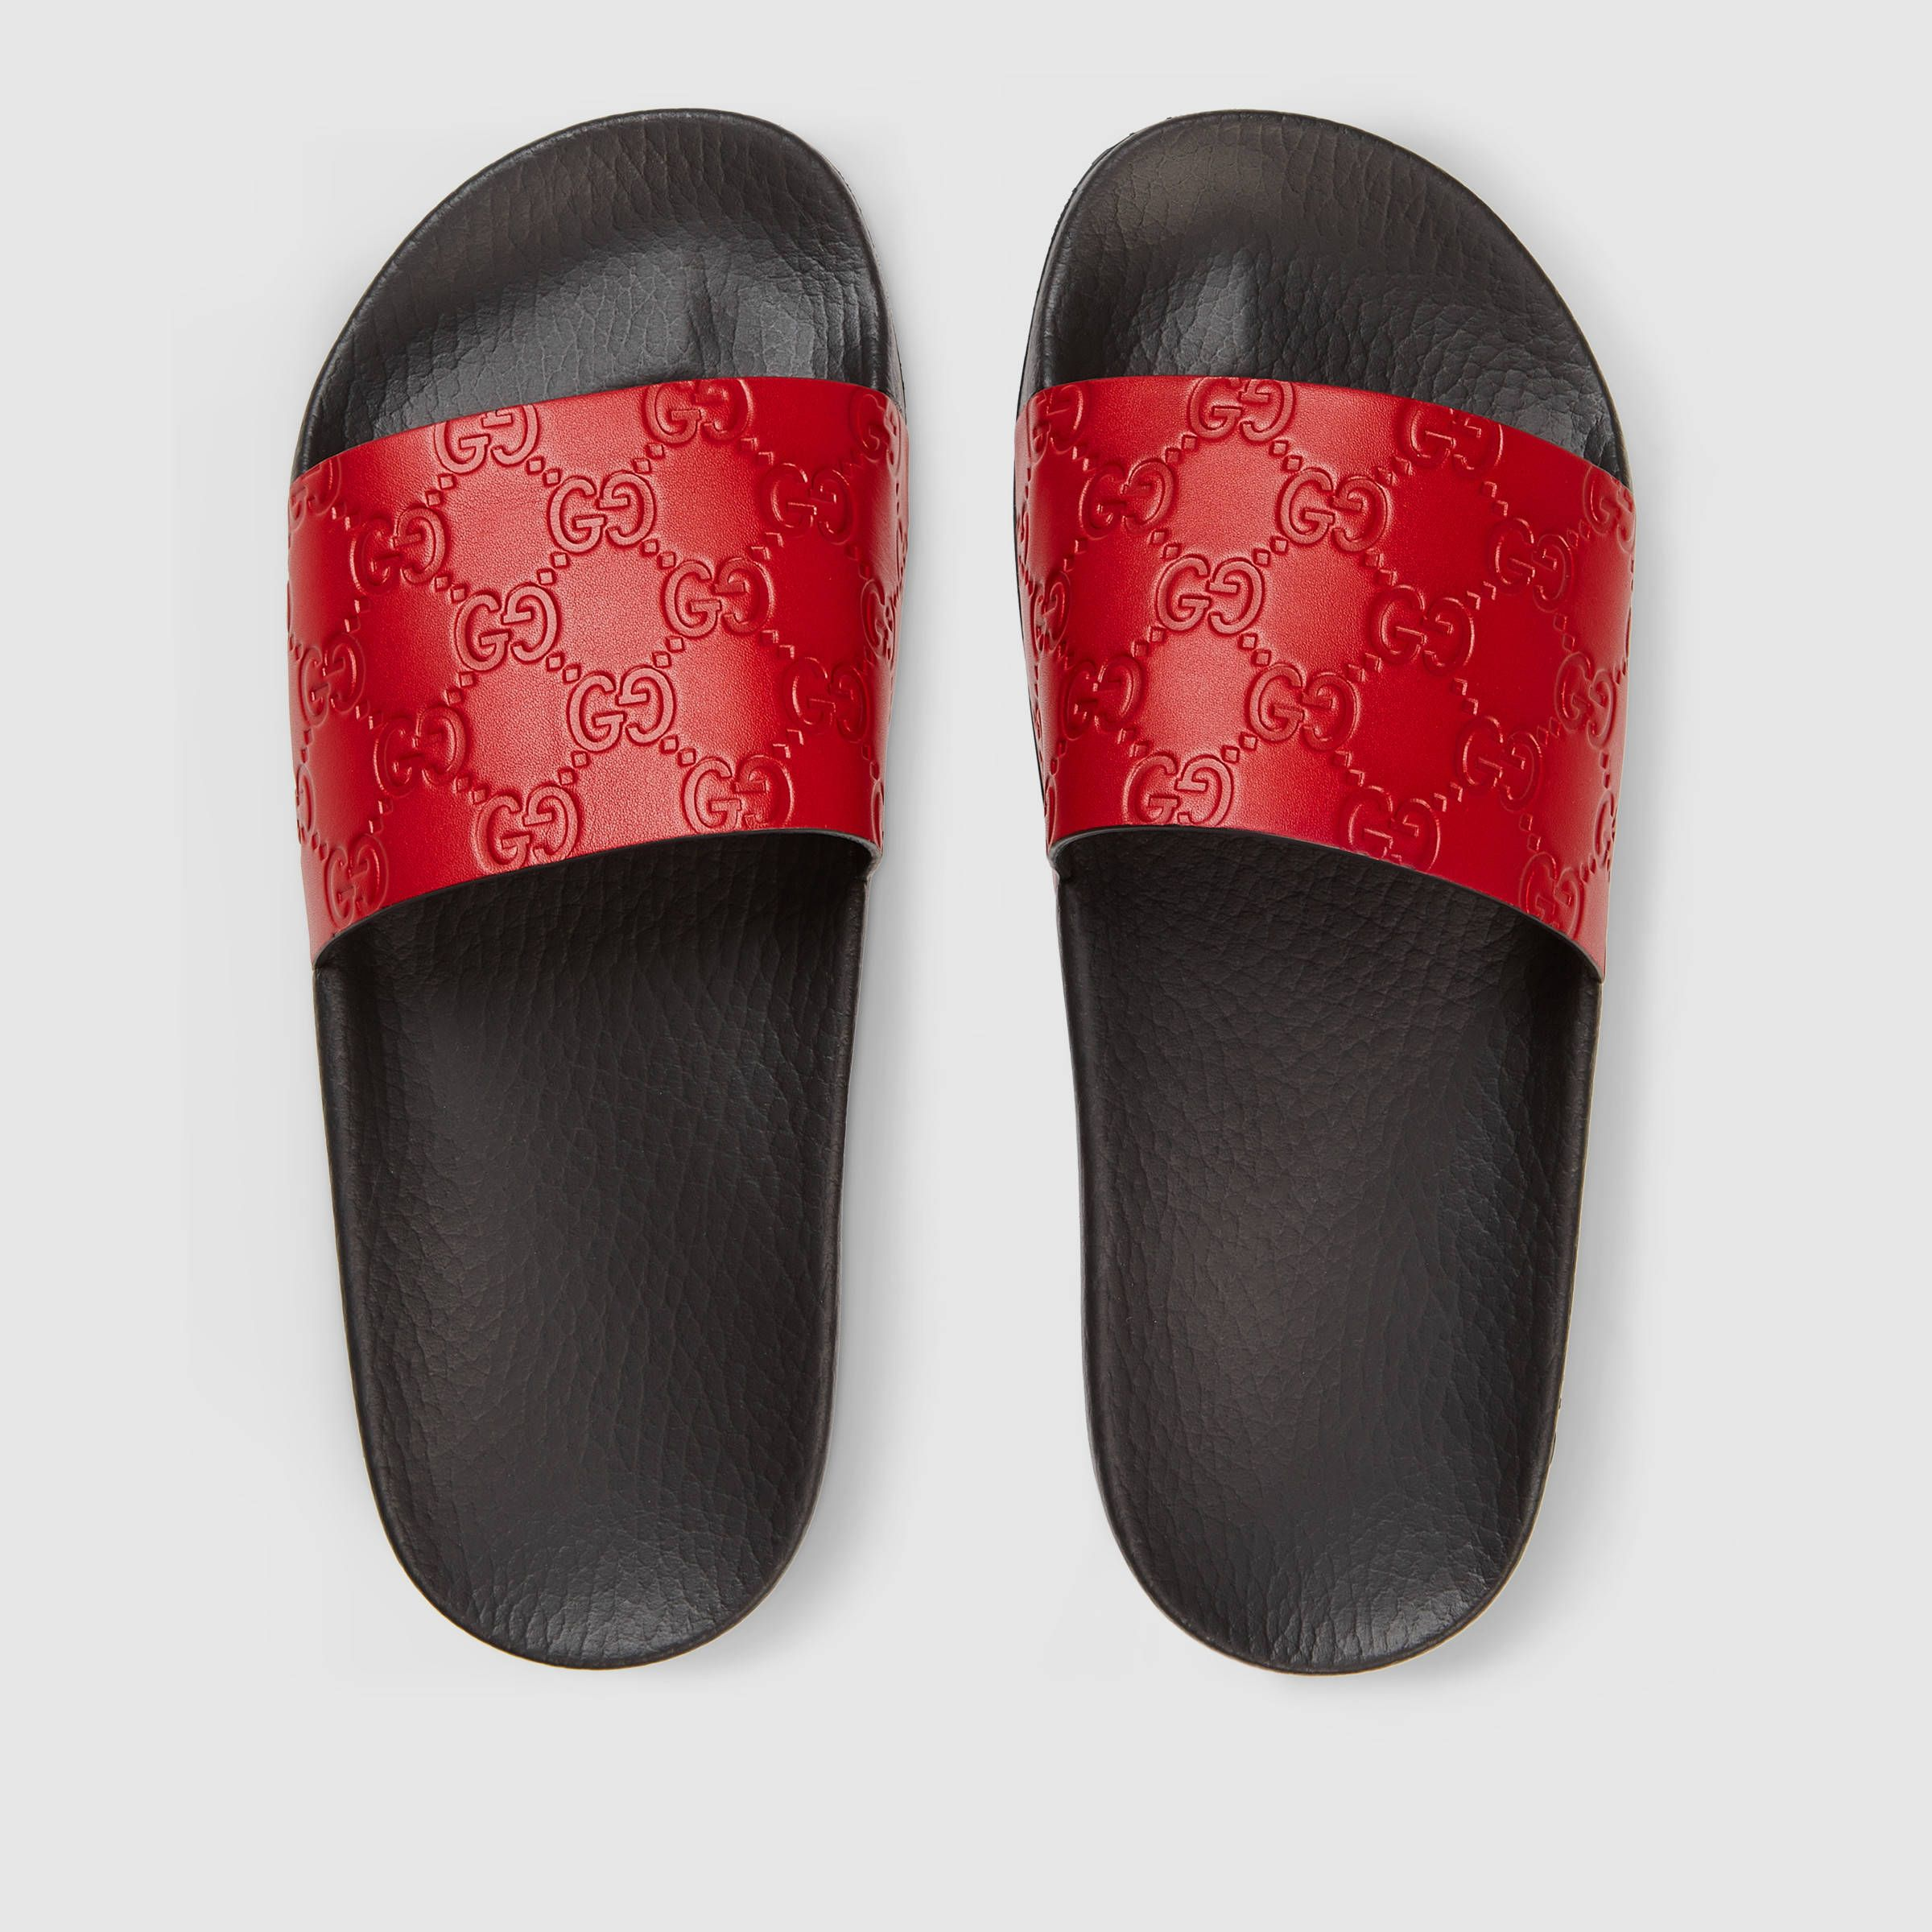 44e9957e6 Gucci Signature slide sandal | Women's Fashion that I love | Slide ...